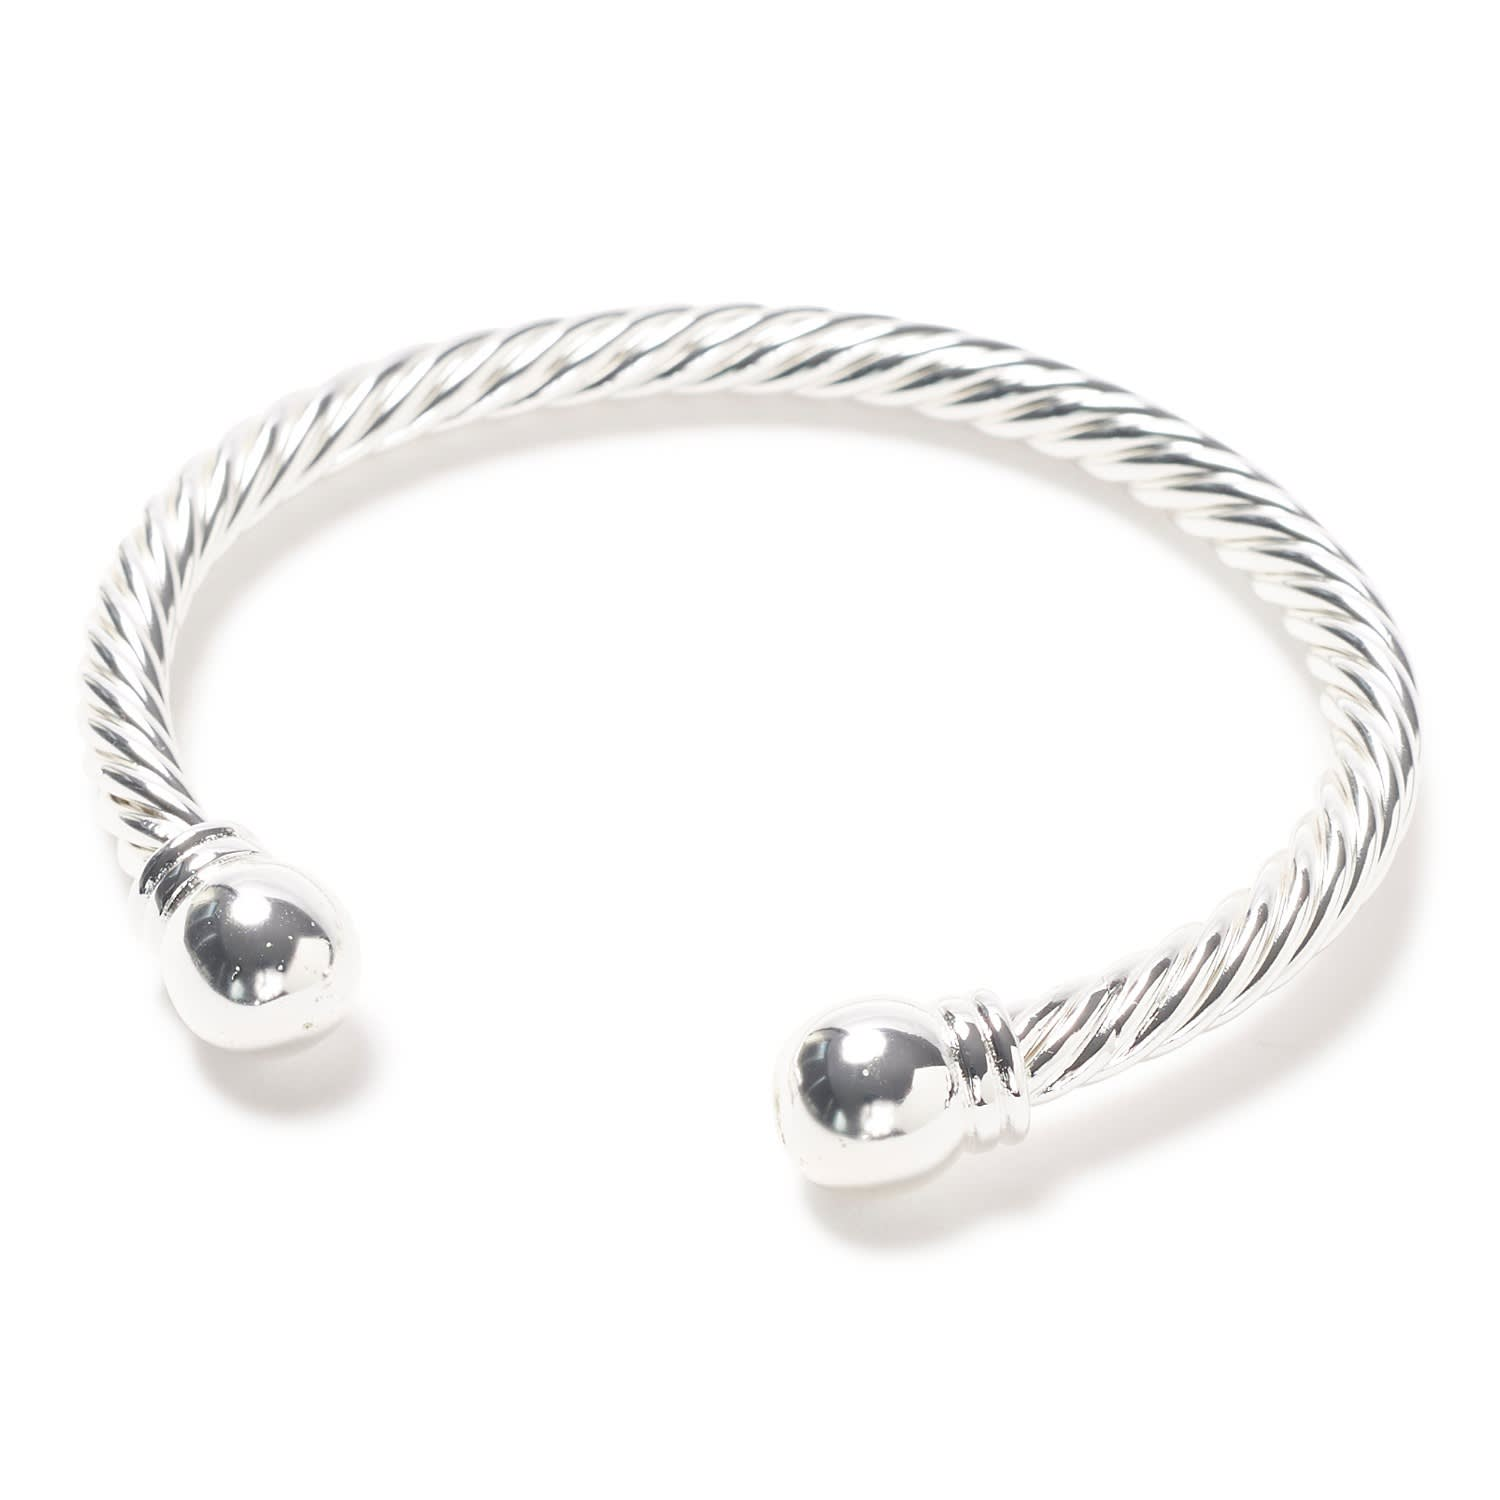 437ed229a20e1 Be Fearless Gentleman Collection by Beblue Jewellery